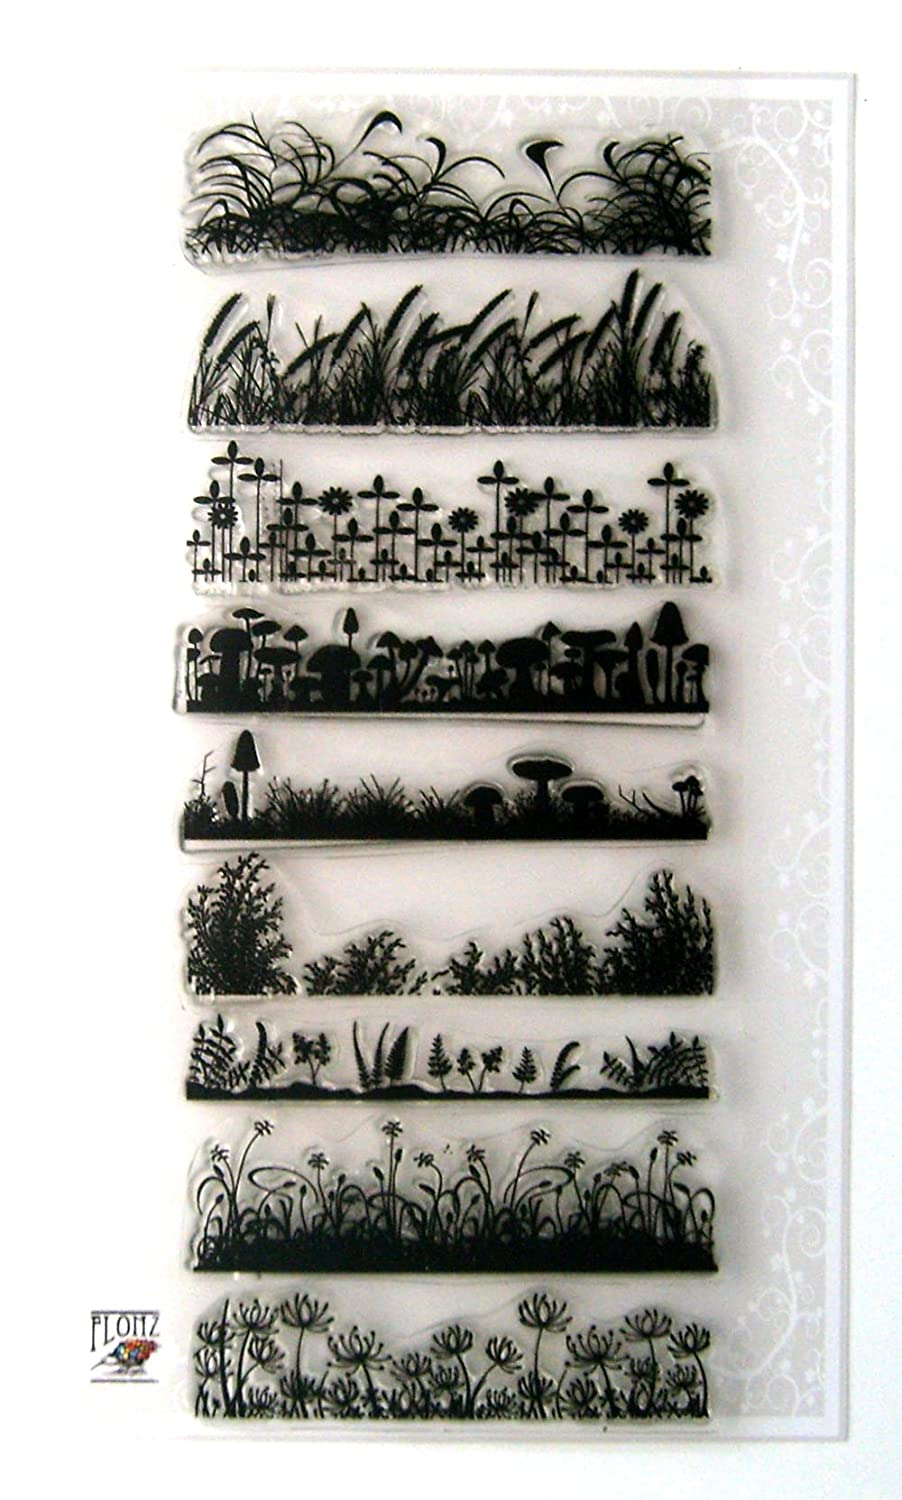 Grass Borders FLONZ Clear Stamp Sheet